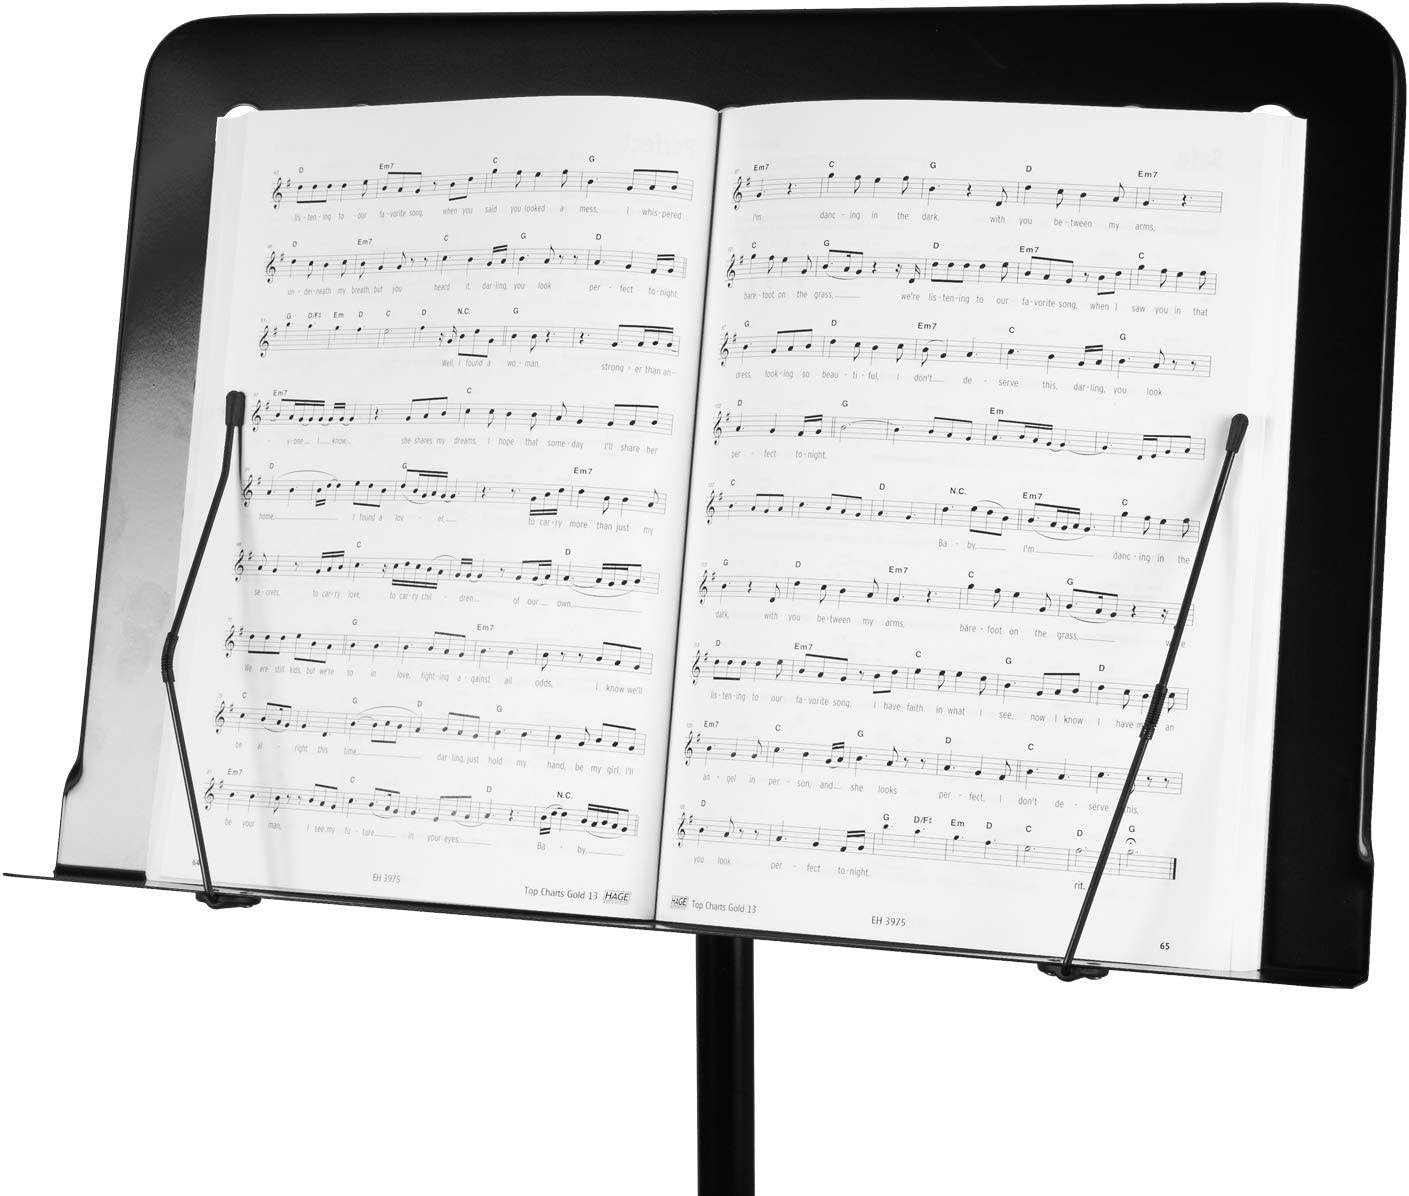 CASCHA Atril de orquesta, plegable, altura regulable: Amazon.es ...